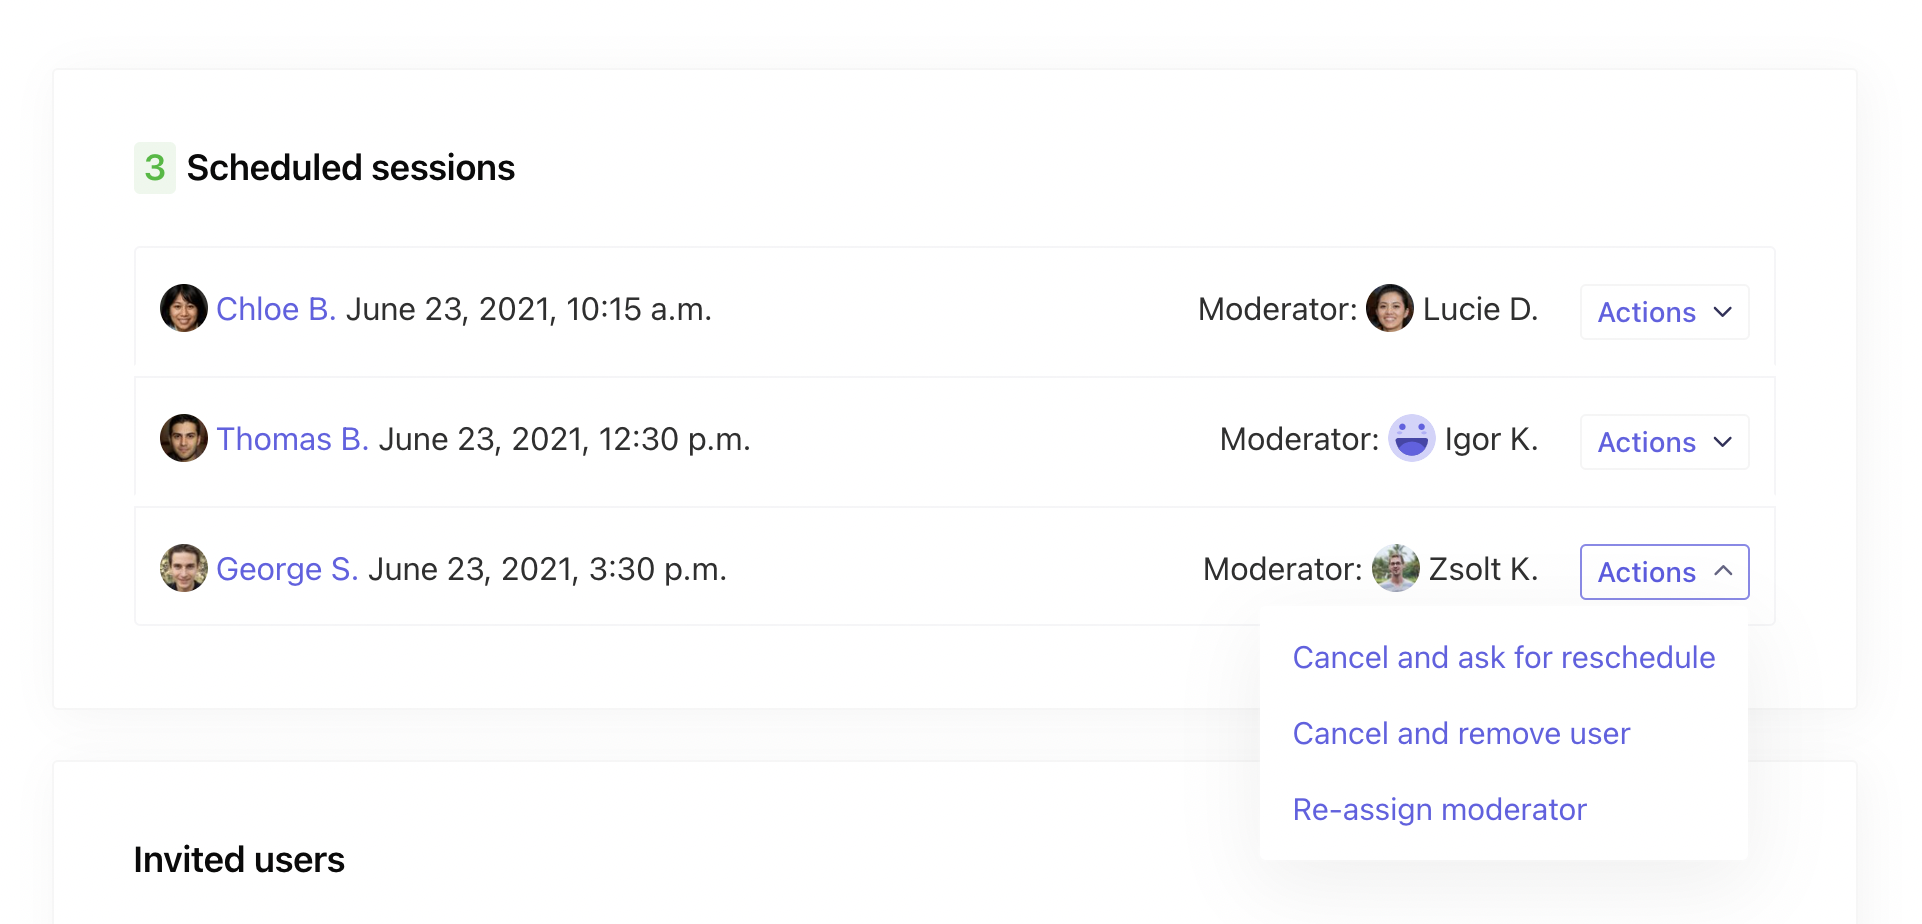 Assign moderators to sessions individually